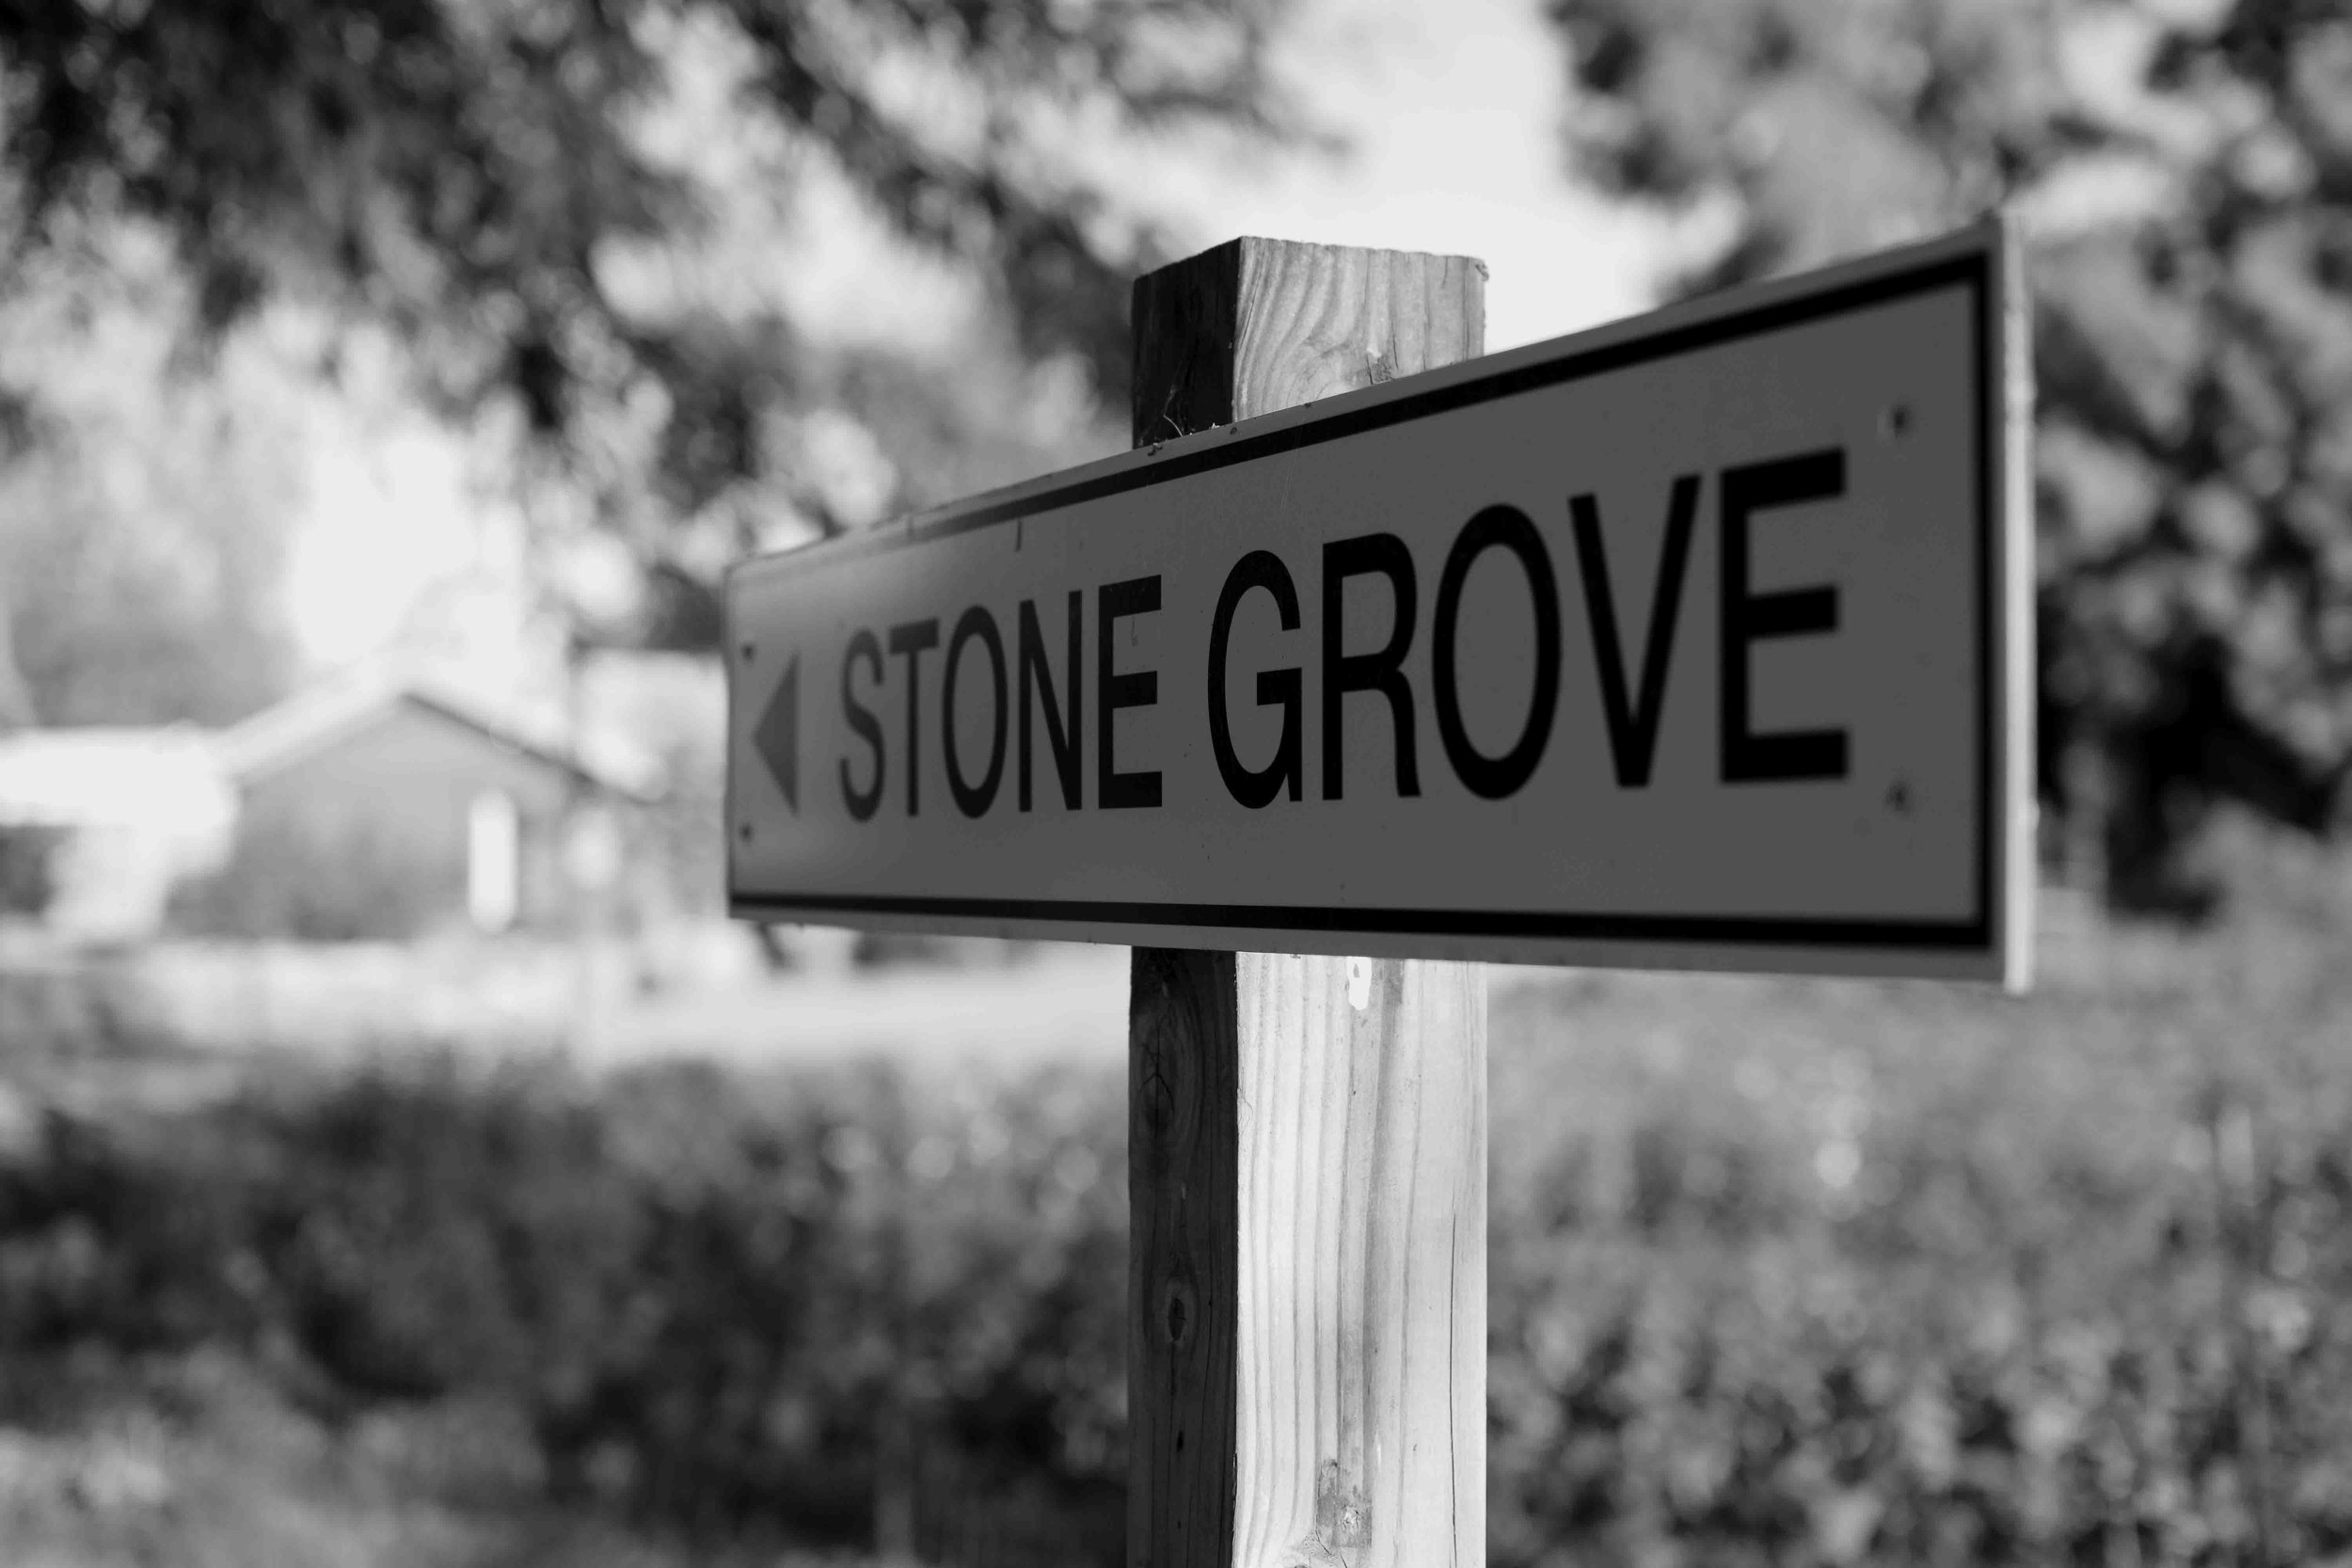 Farm at South Mountain Stone Grove Sign BW Low Res.jpg